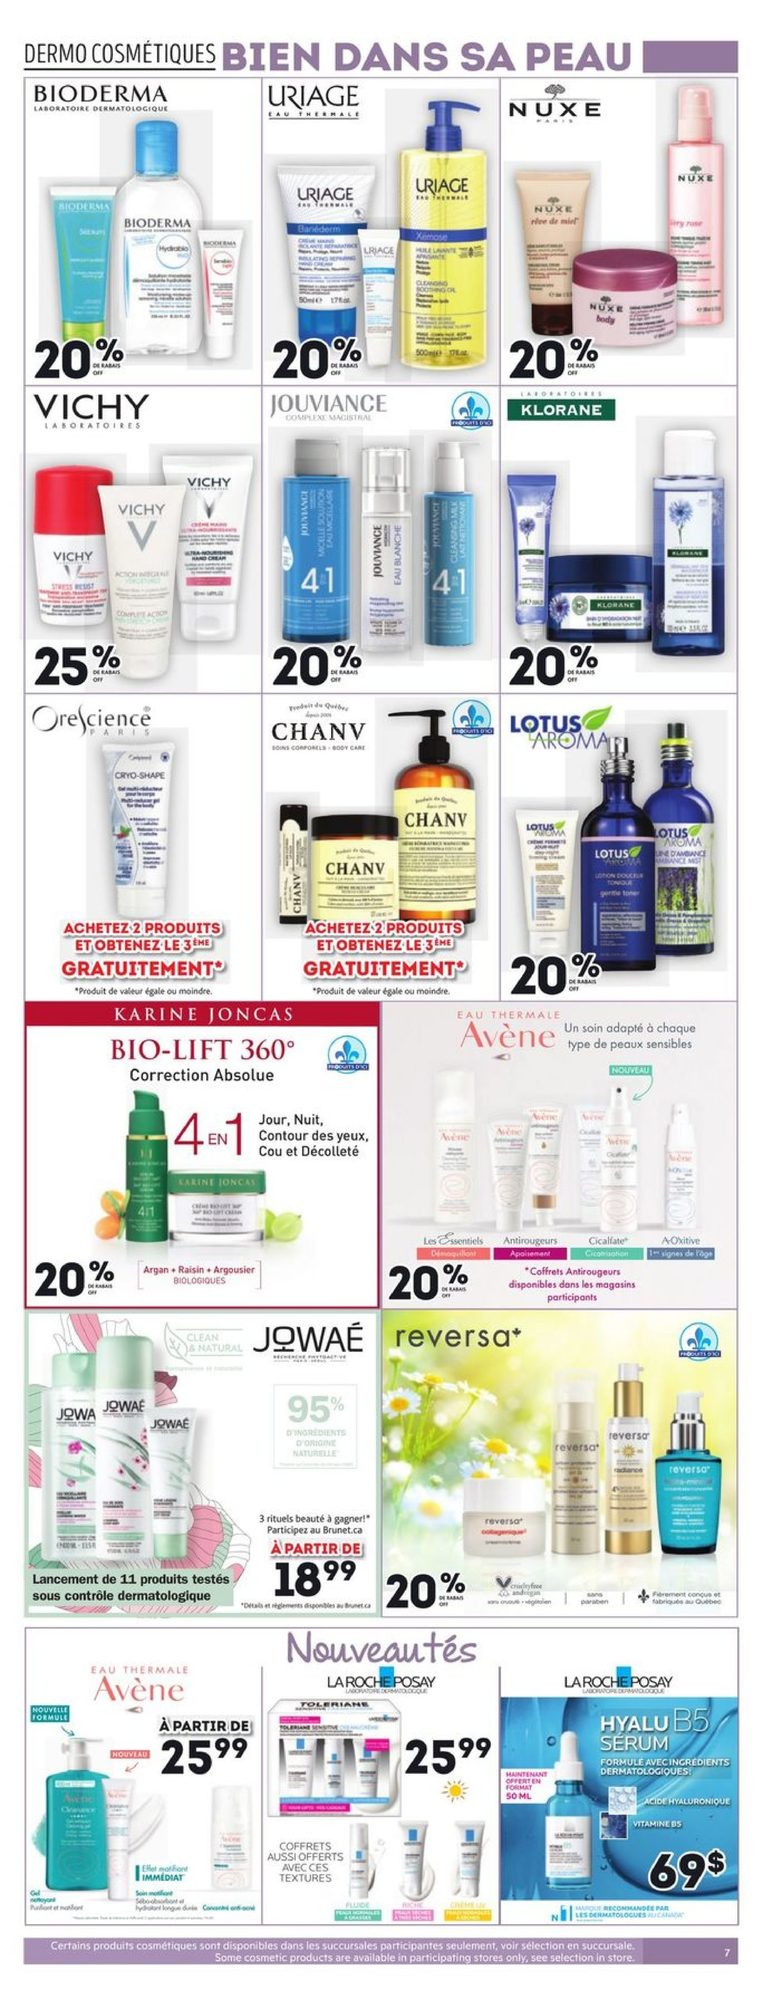 Brunet - Weekly Flyer Specials - Page 7